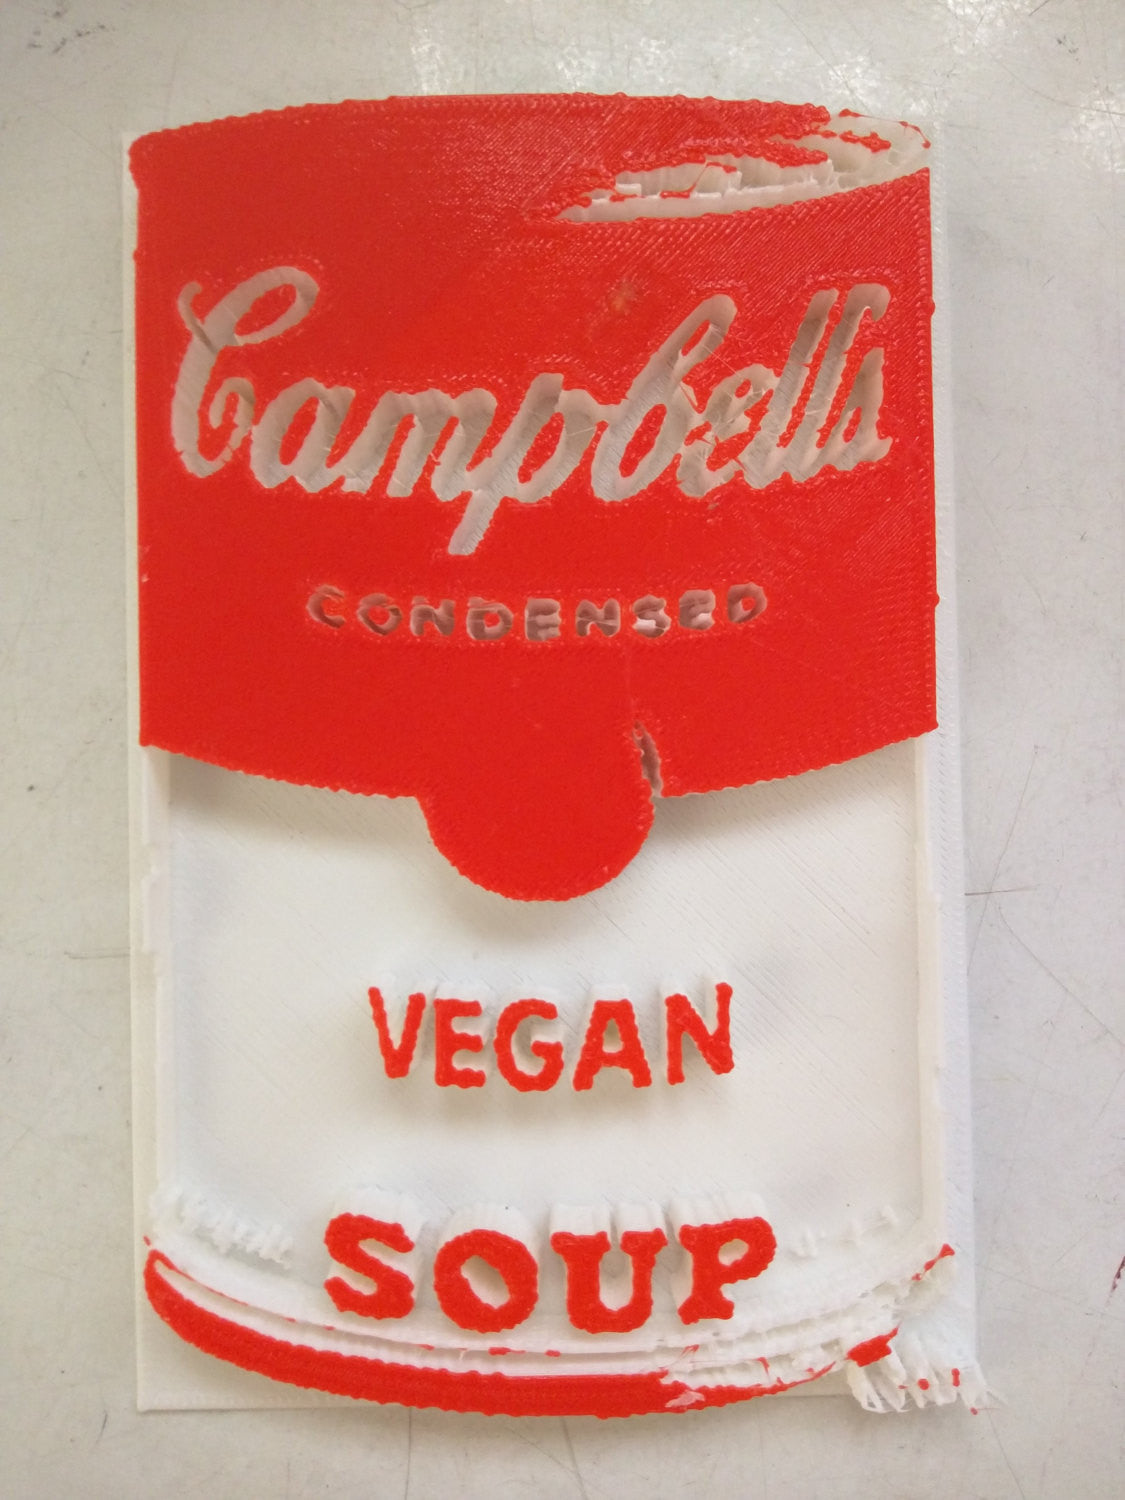 3D printed Campbell's Vegan Soup Red & White by L3f0u